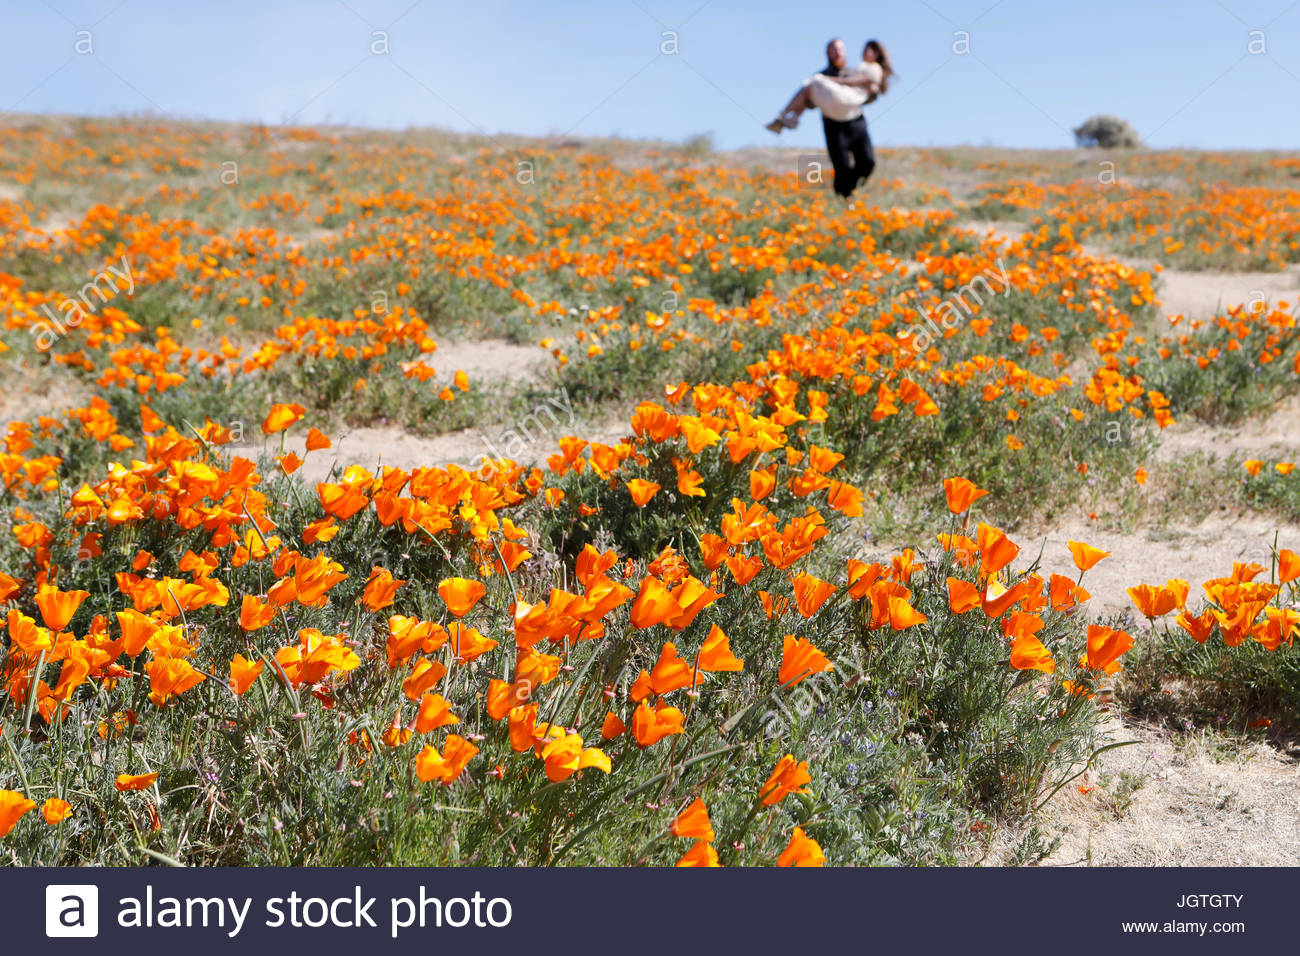 A man carries his wife down a hill at Antelope Valley California Poppy Reserve. - Stock Image